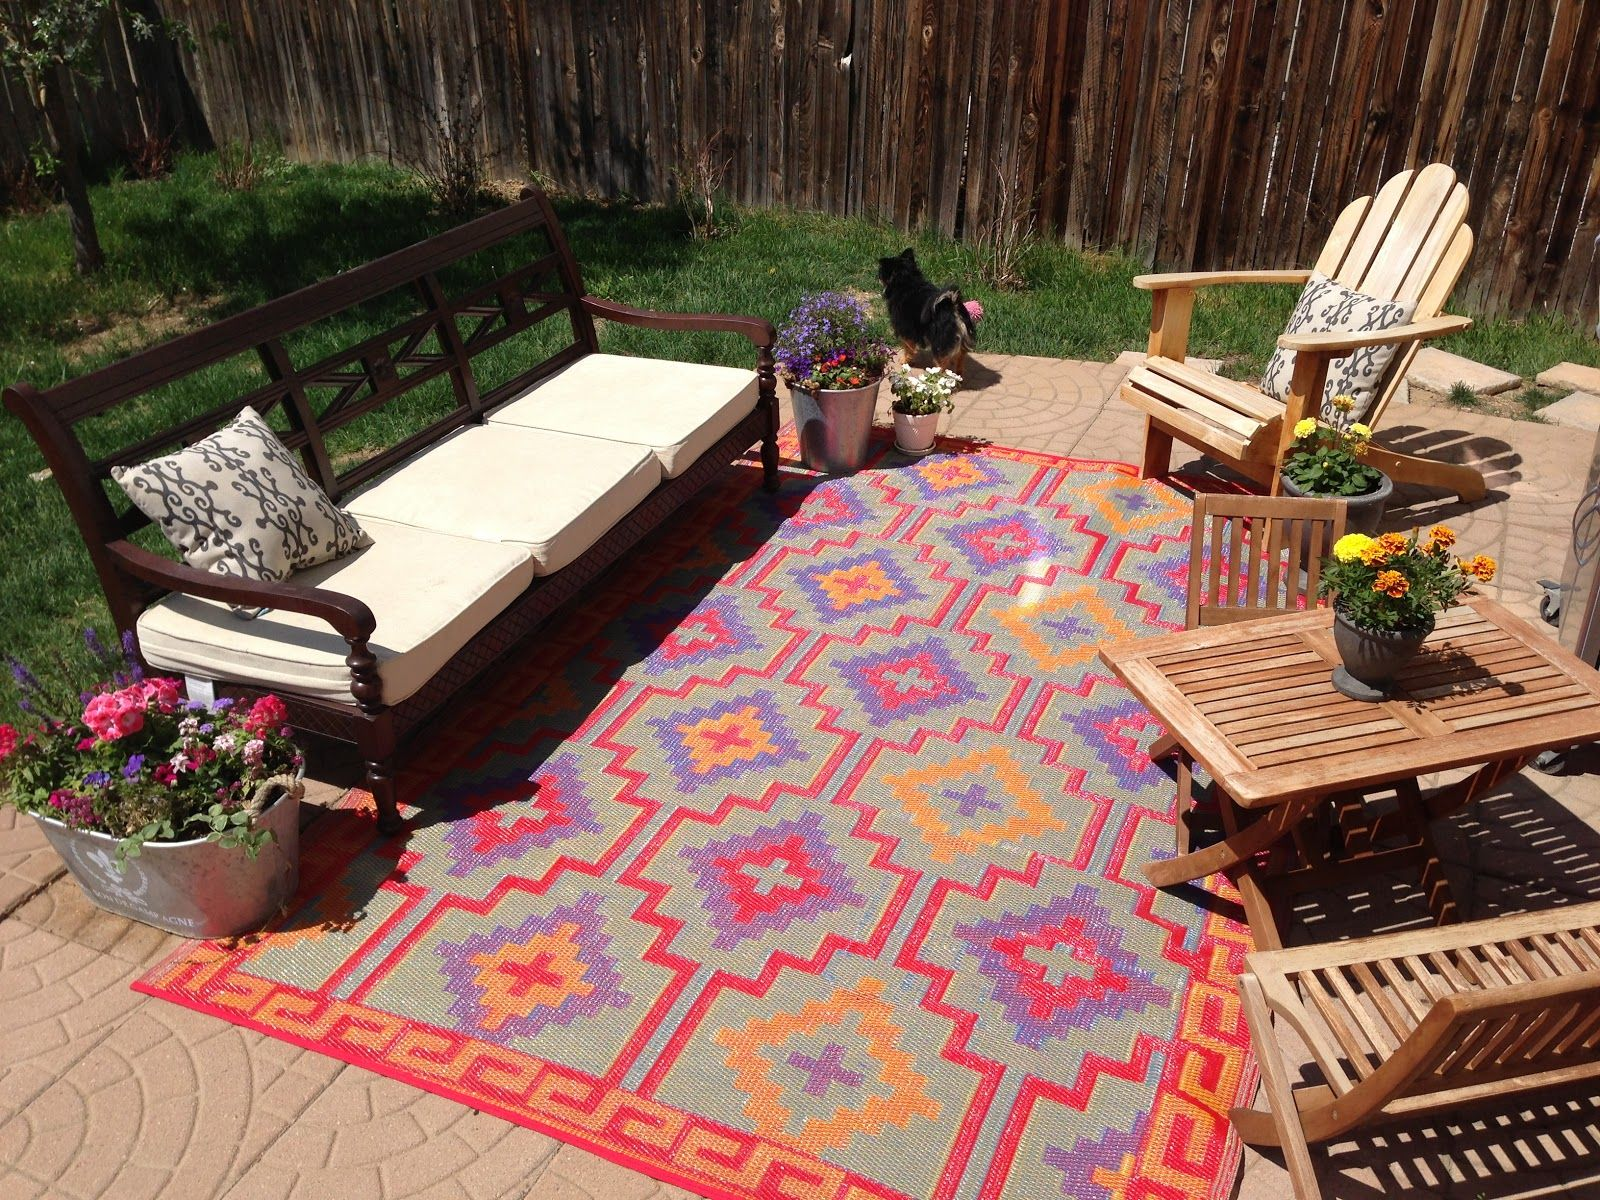 Outdoor Patio Rug Colors   Http://outdoor.taylorectorstudios.com/outdoor  Patio Rug Colors/ : #OutdoorFurniture Outdoor Patio Rug U2013 Siding Is  Different ...